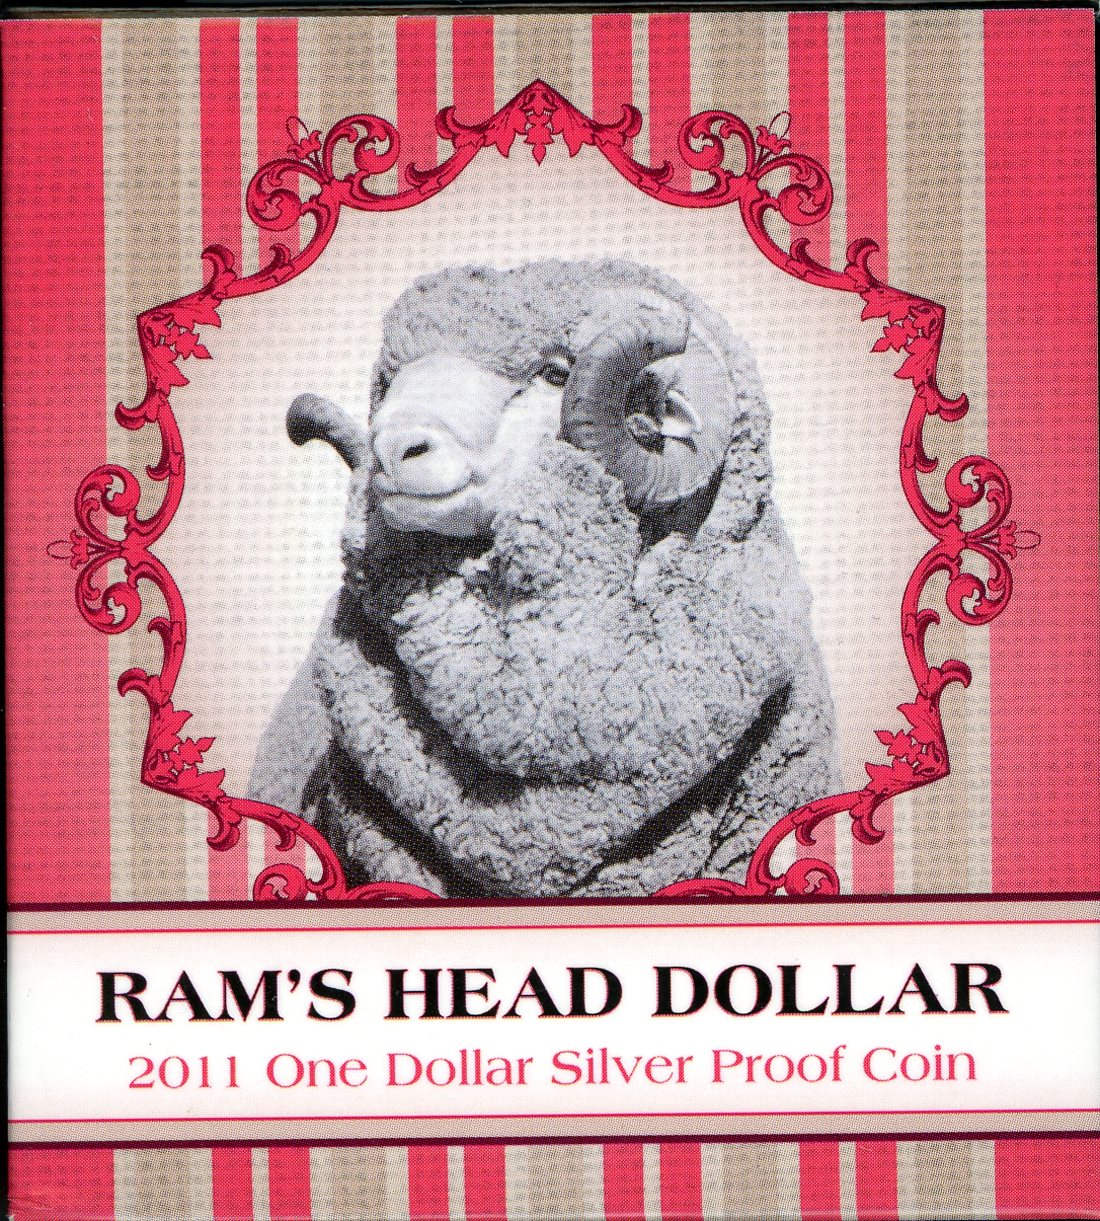 Thumbnail for 2011 $1 Silver Proof Coin - Rams Head